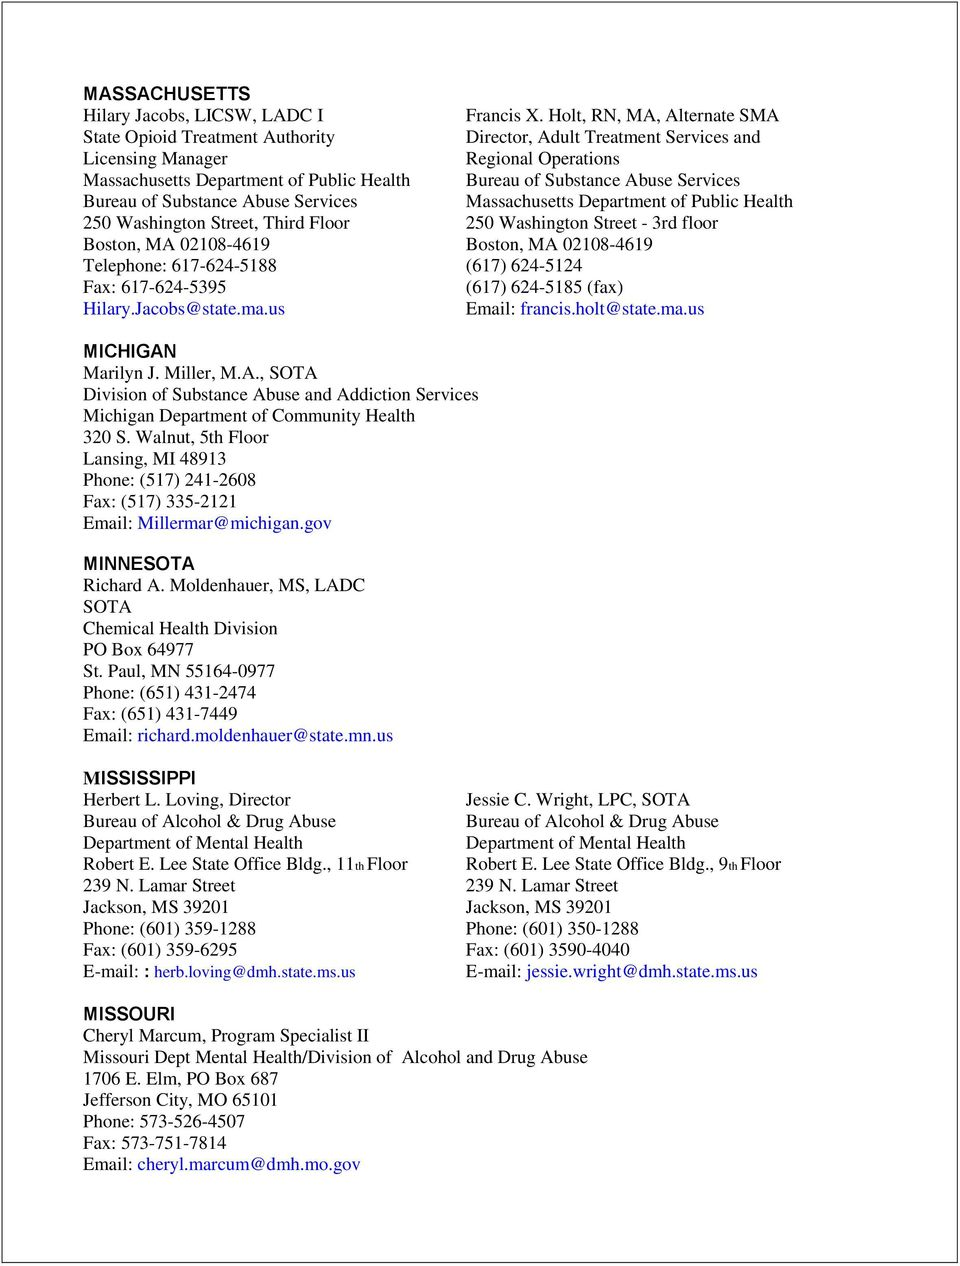 State Opioid Treatment Authorities Contact Information June Pdf